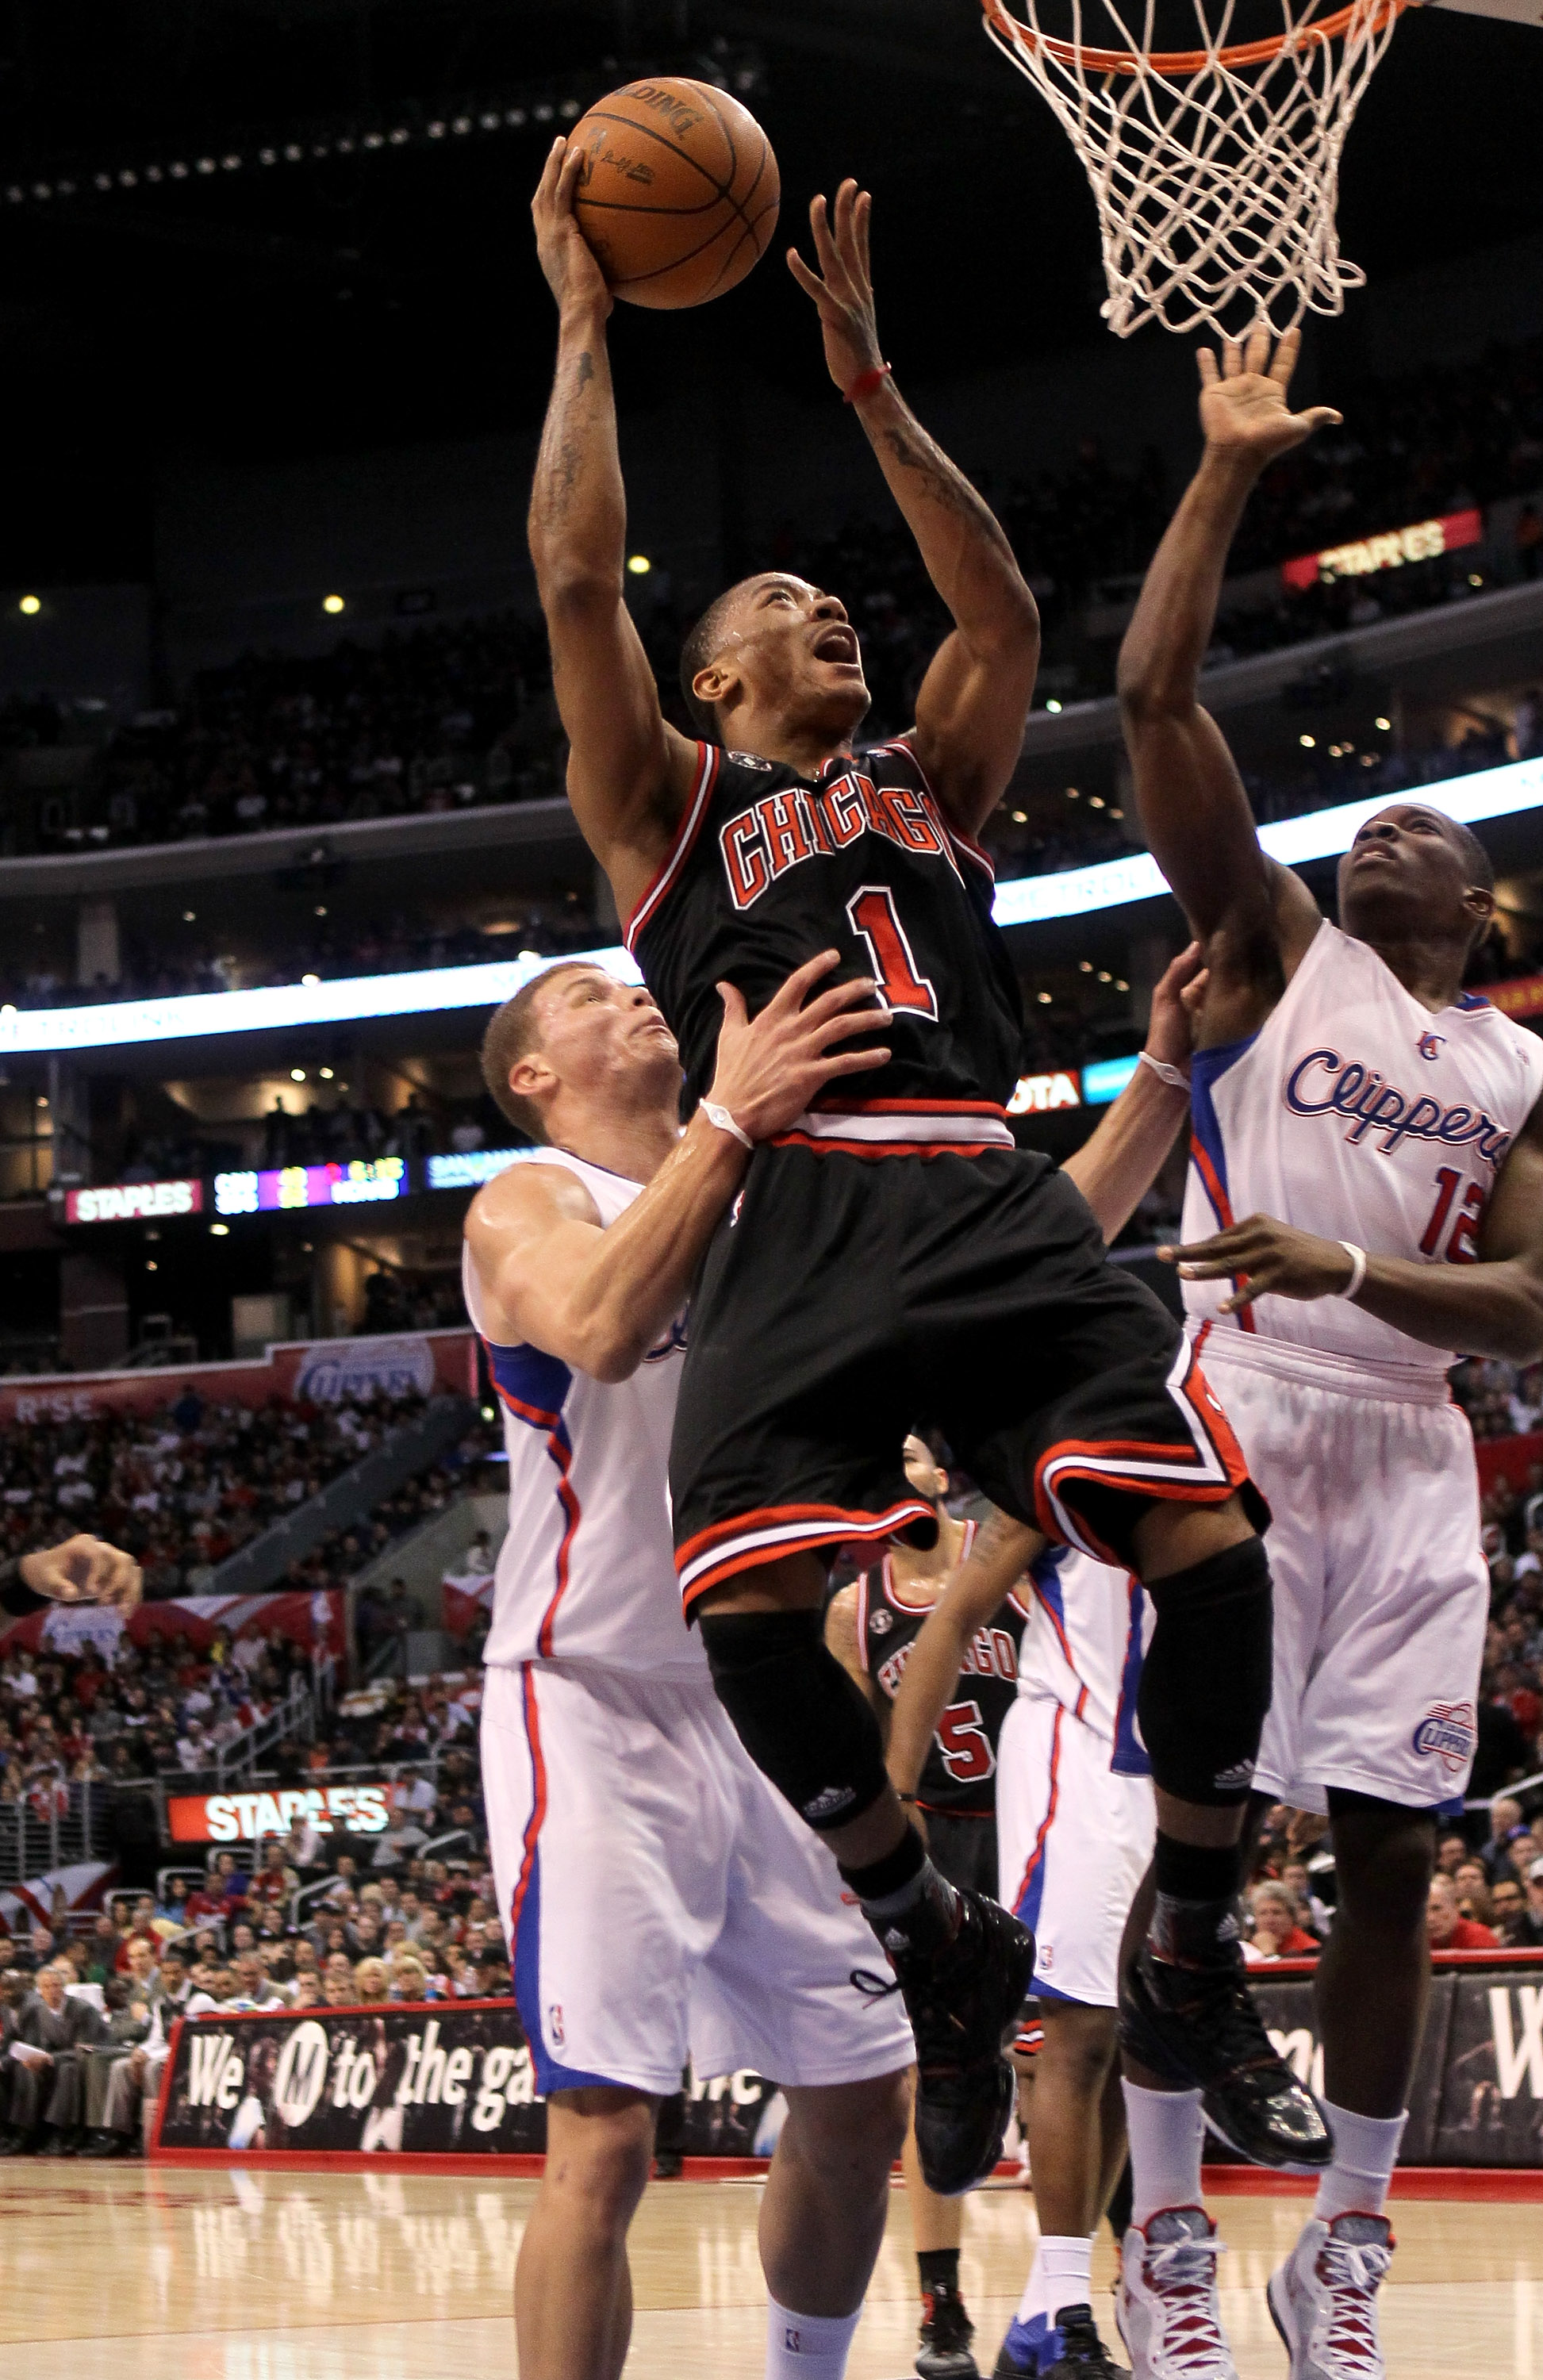 LOS ANGELES, CA - FEBRUARY 02:  Derrick Rose #1 of the Chicago Bulls goes up for a shot over Blake Griffin #32 and Eric Bledsoe #12 of the Los Angeles Clippers at Staples Center on February 2, 2011  in Los Angeles, California.  NOTE TO USER: User expressl